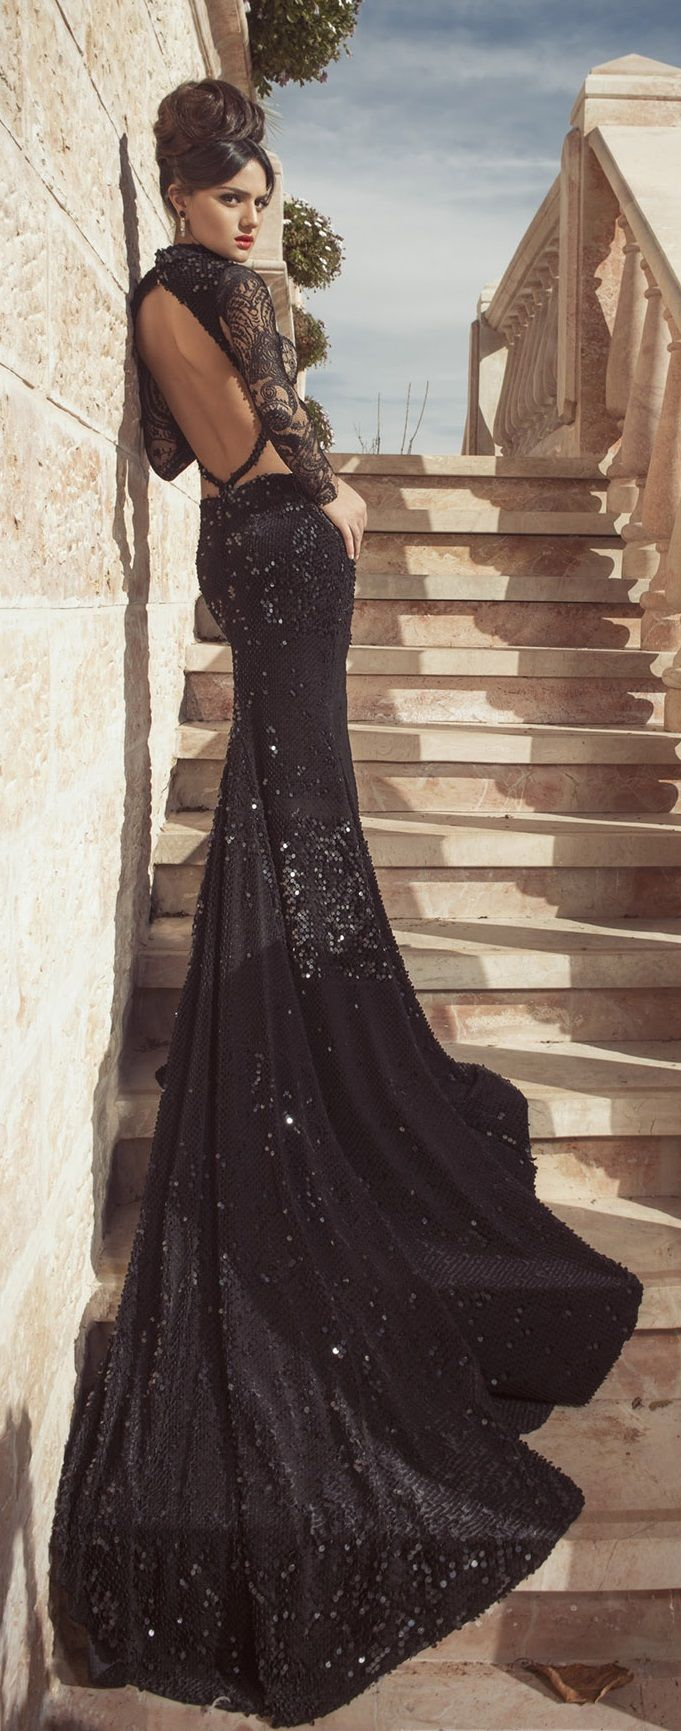 Black long sleeve wedding dresses   Best images about Mrs Tampanello on Pinterest  Gothic wedding